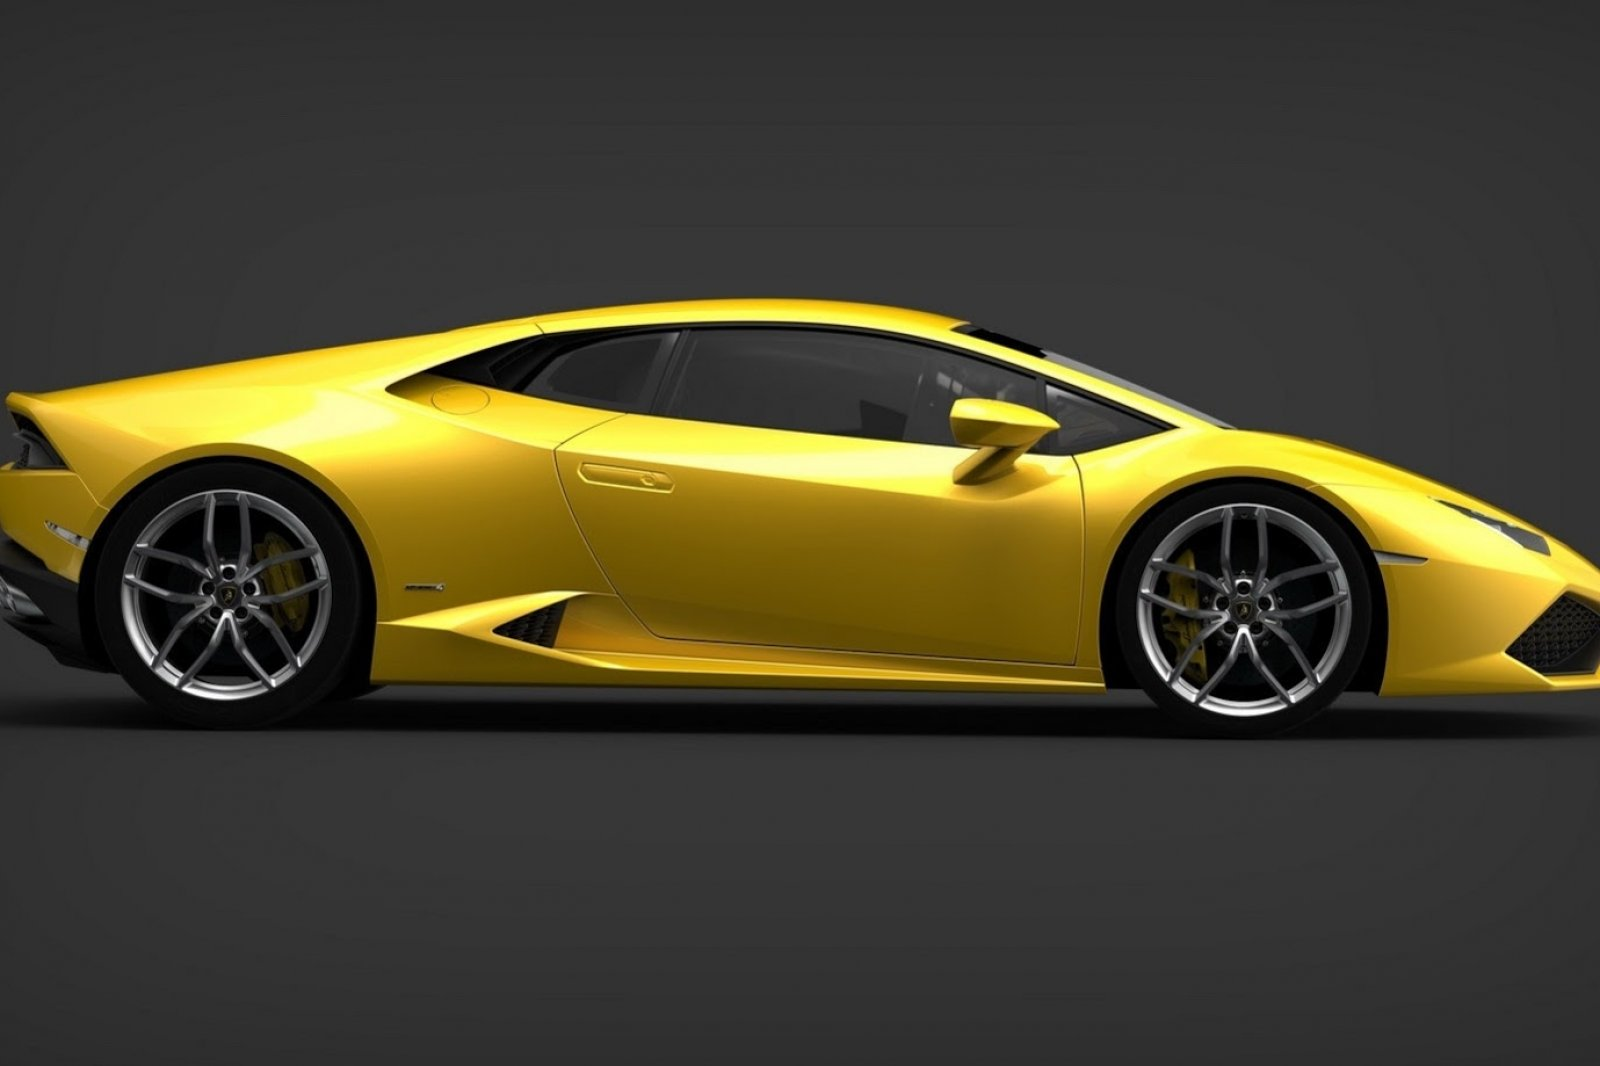 2018 Lamborghini Huracan LP610 4 photo - 1